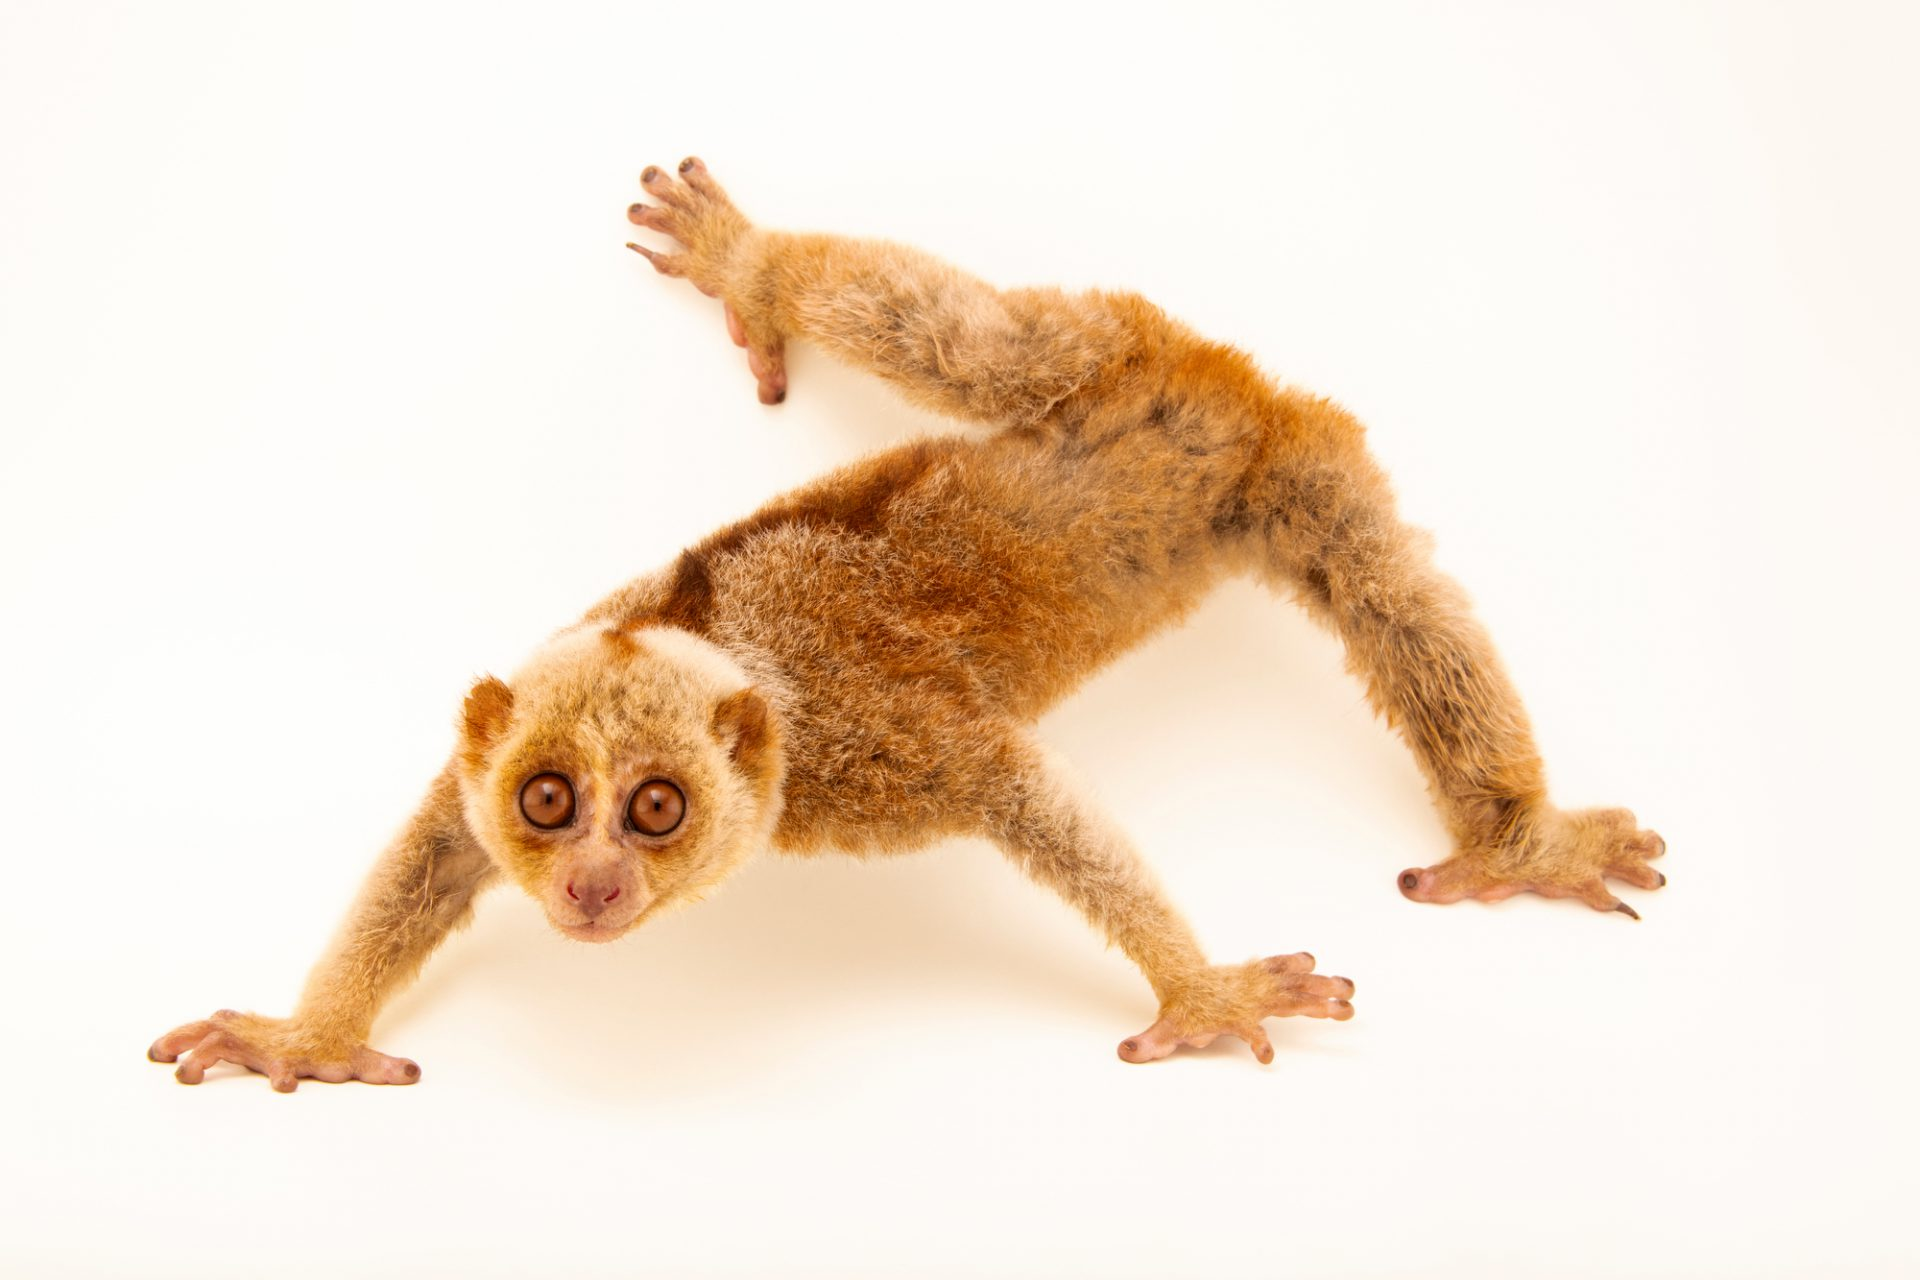 Photo: Bengal slow loris (Nycticebus bengalensis) at the Angkor Centre for Conservation of Biodiversity (ACCB) in Siem Reap, Cambodia.